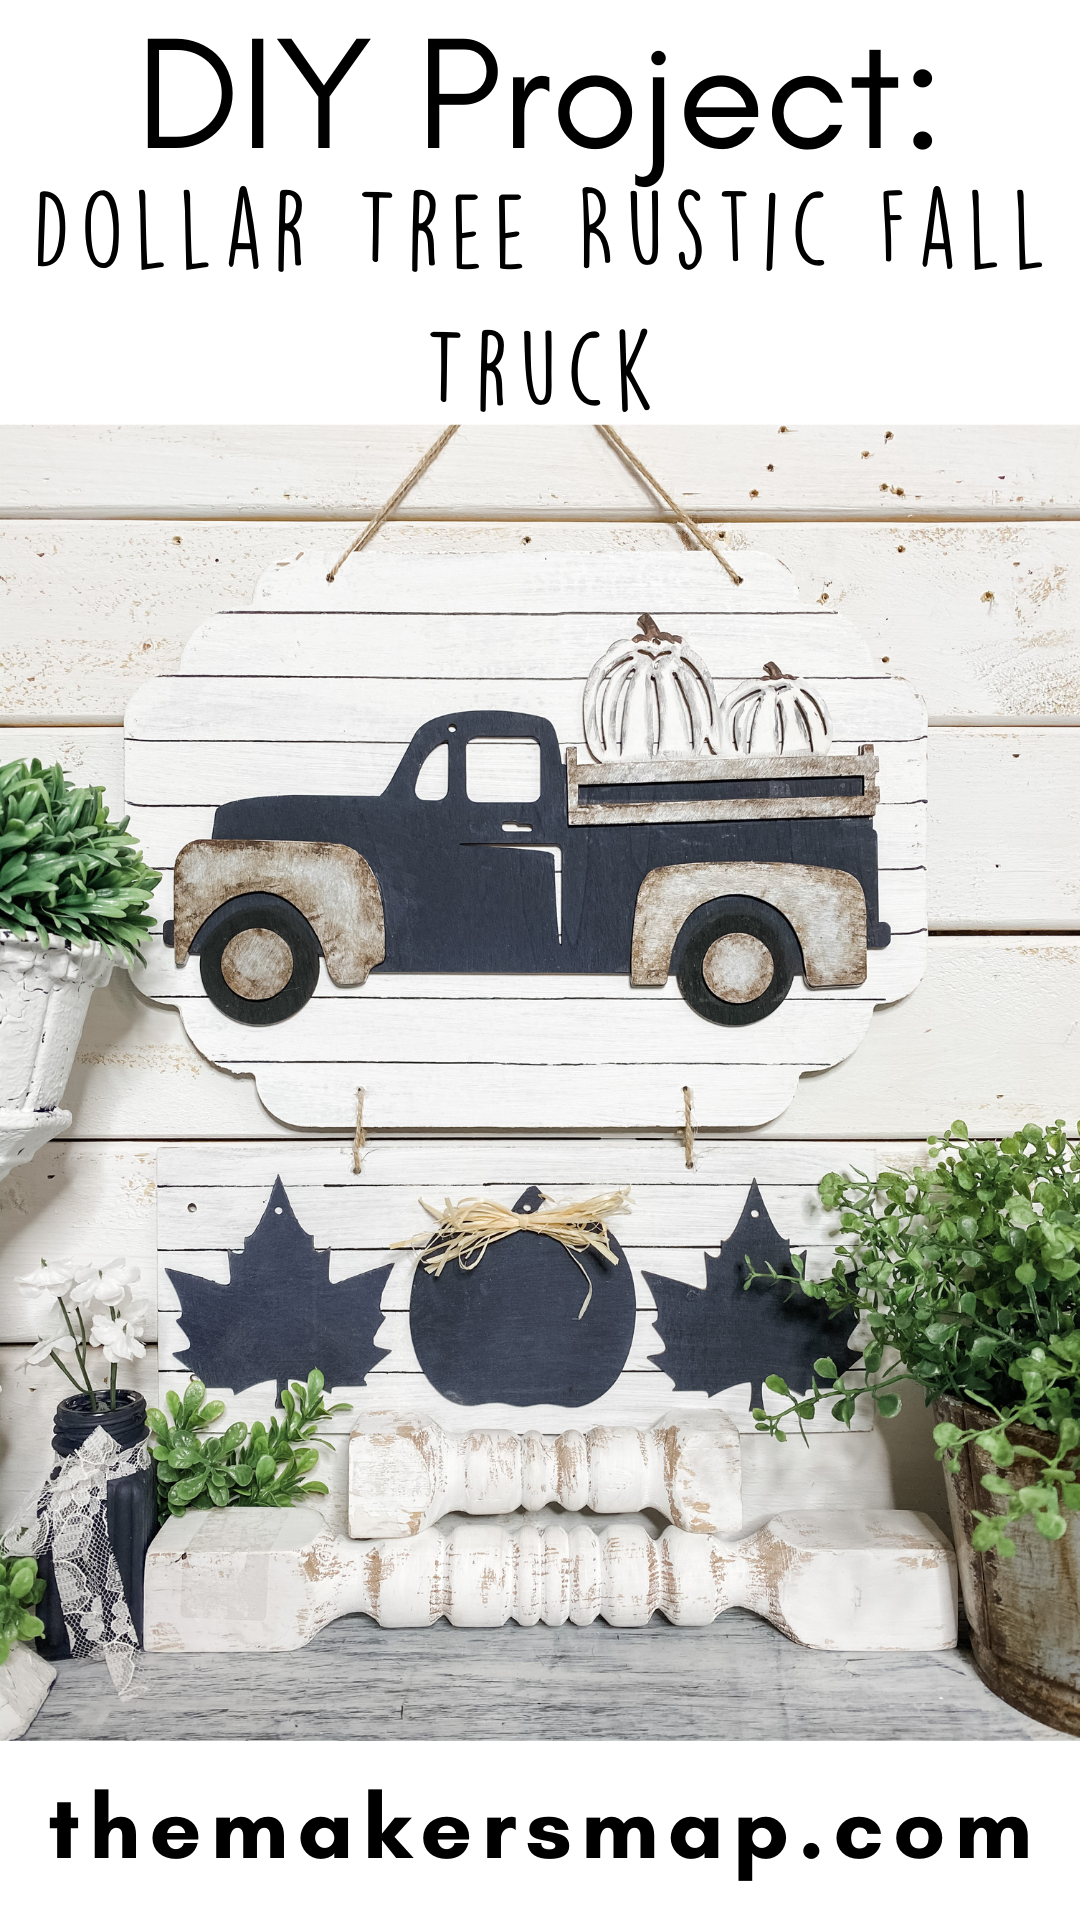 Dollar Tree Rustic Fall Truck DIY Pin